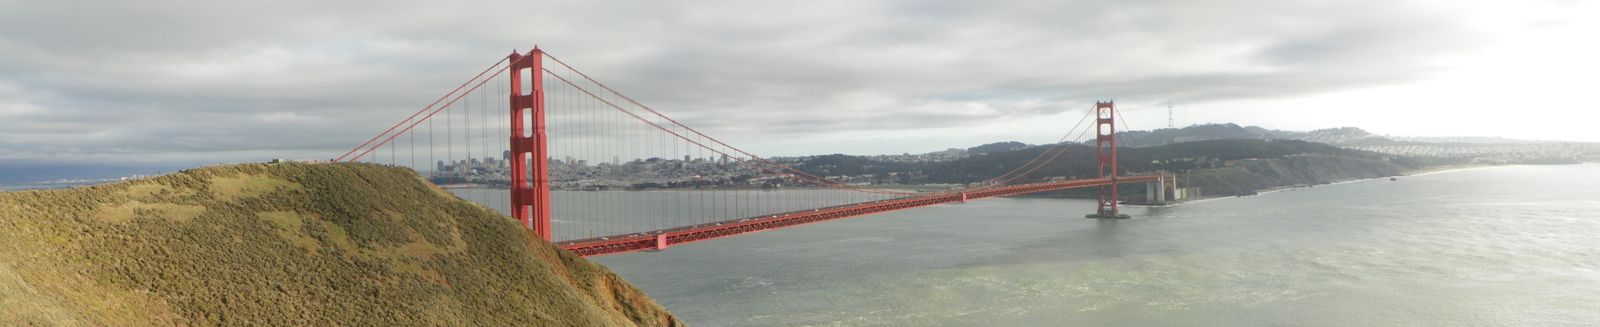 pano Golden gate